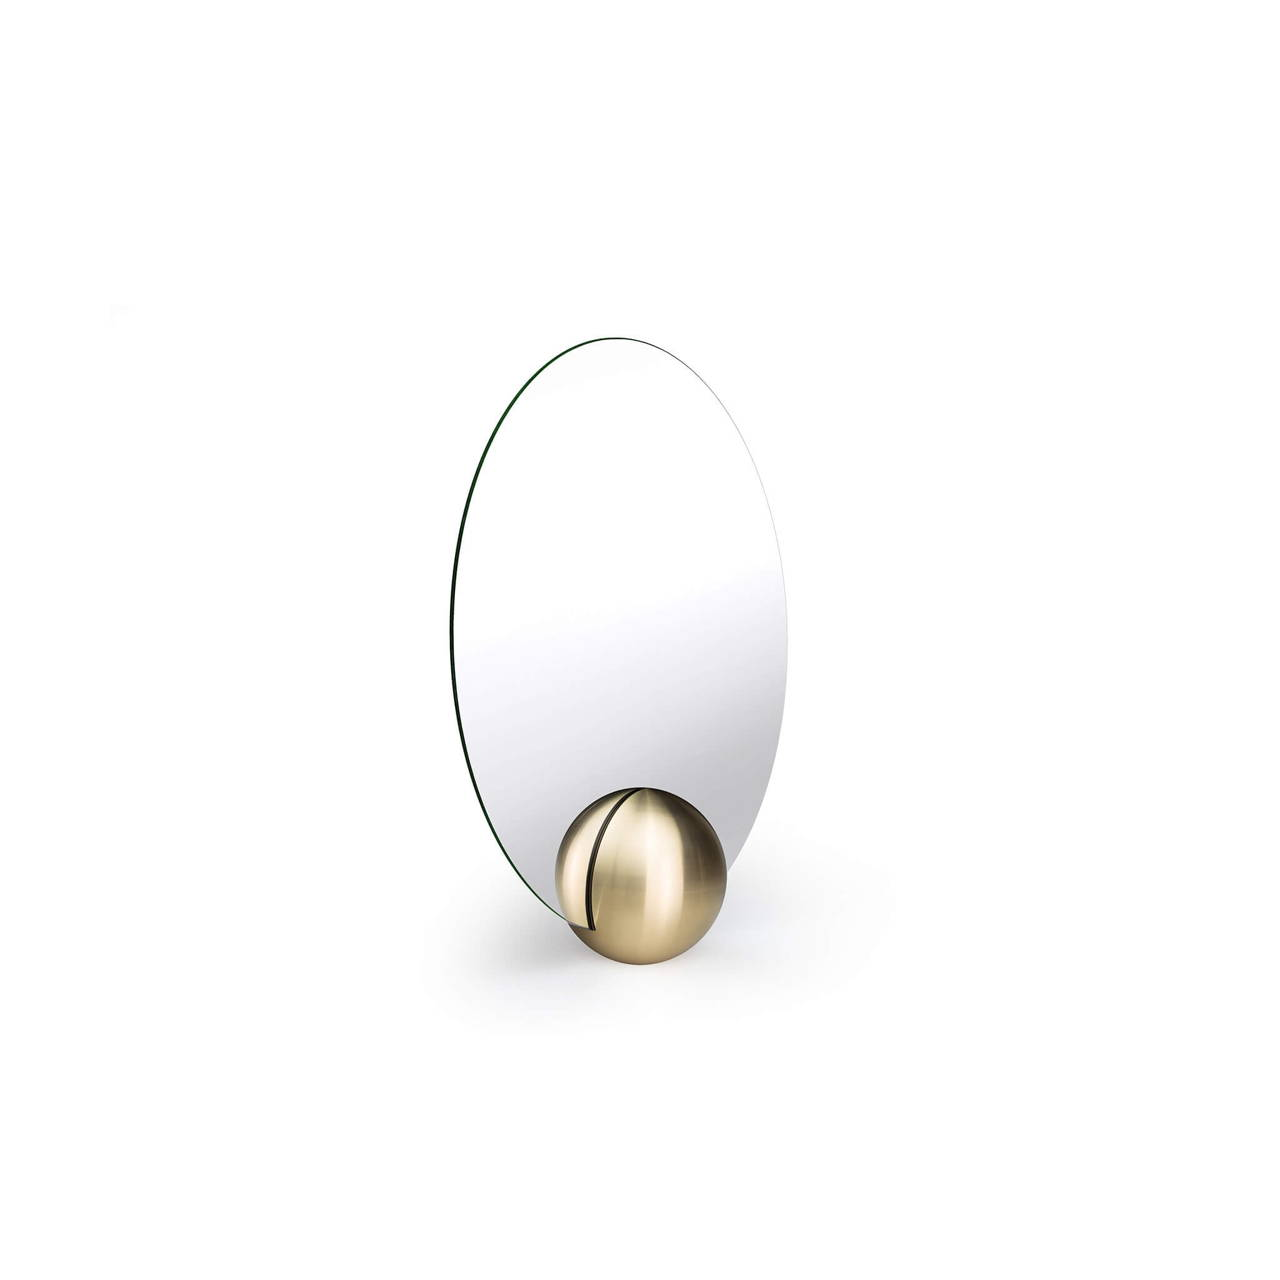 O-Mirror 200 in Brass